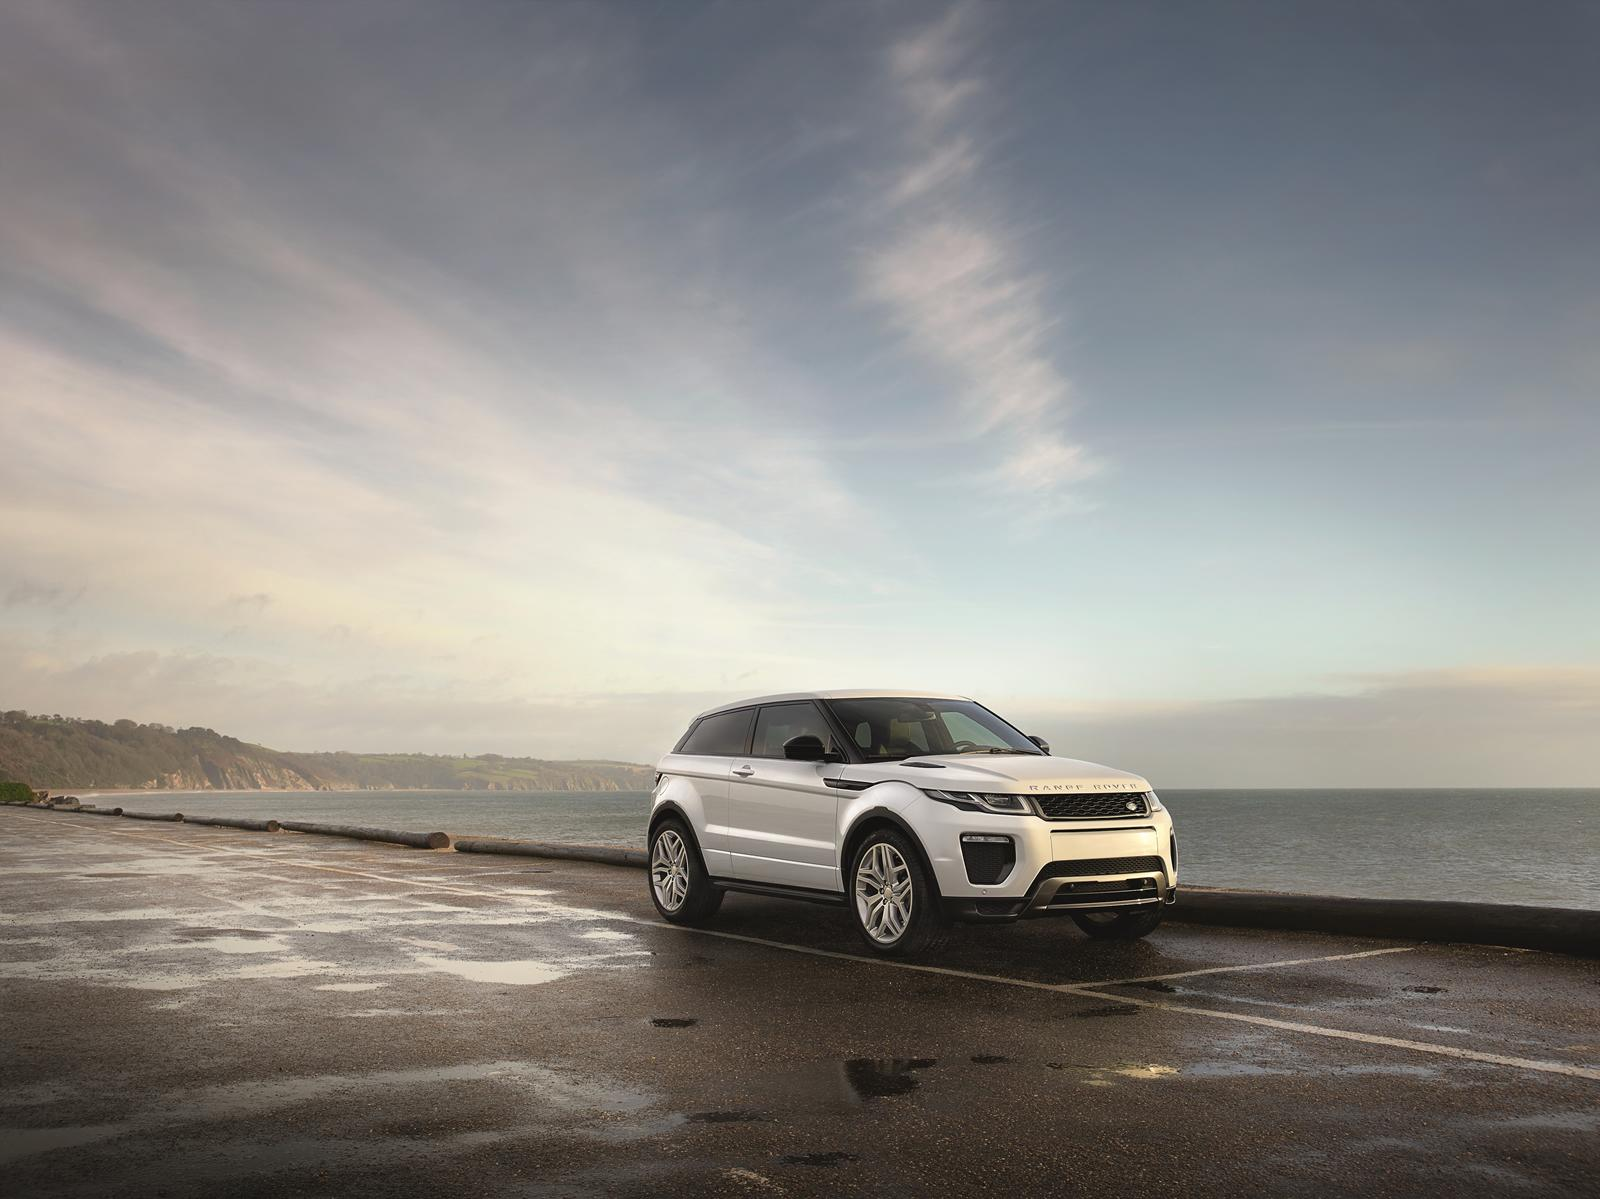 2016 range rover evoque coming with full led adaptive. Black Bedroom Furniture Sets. Home Design Ideas